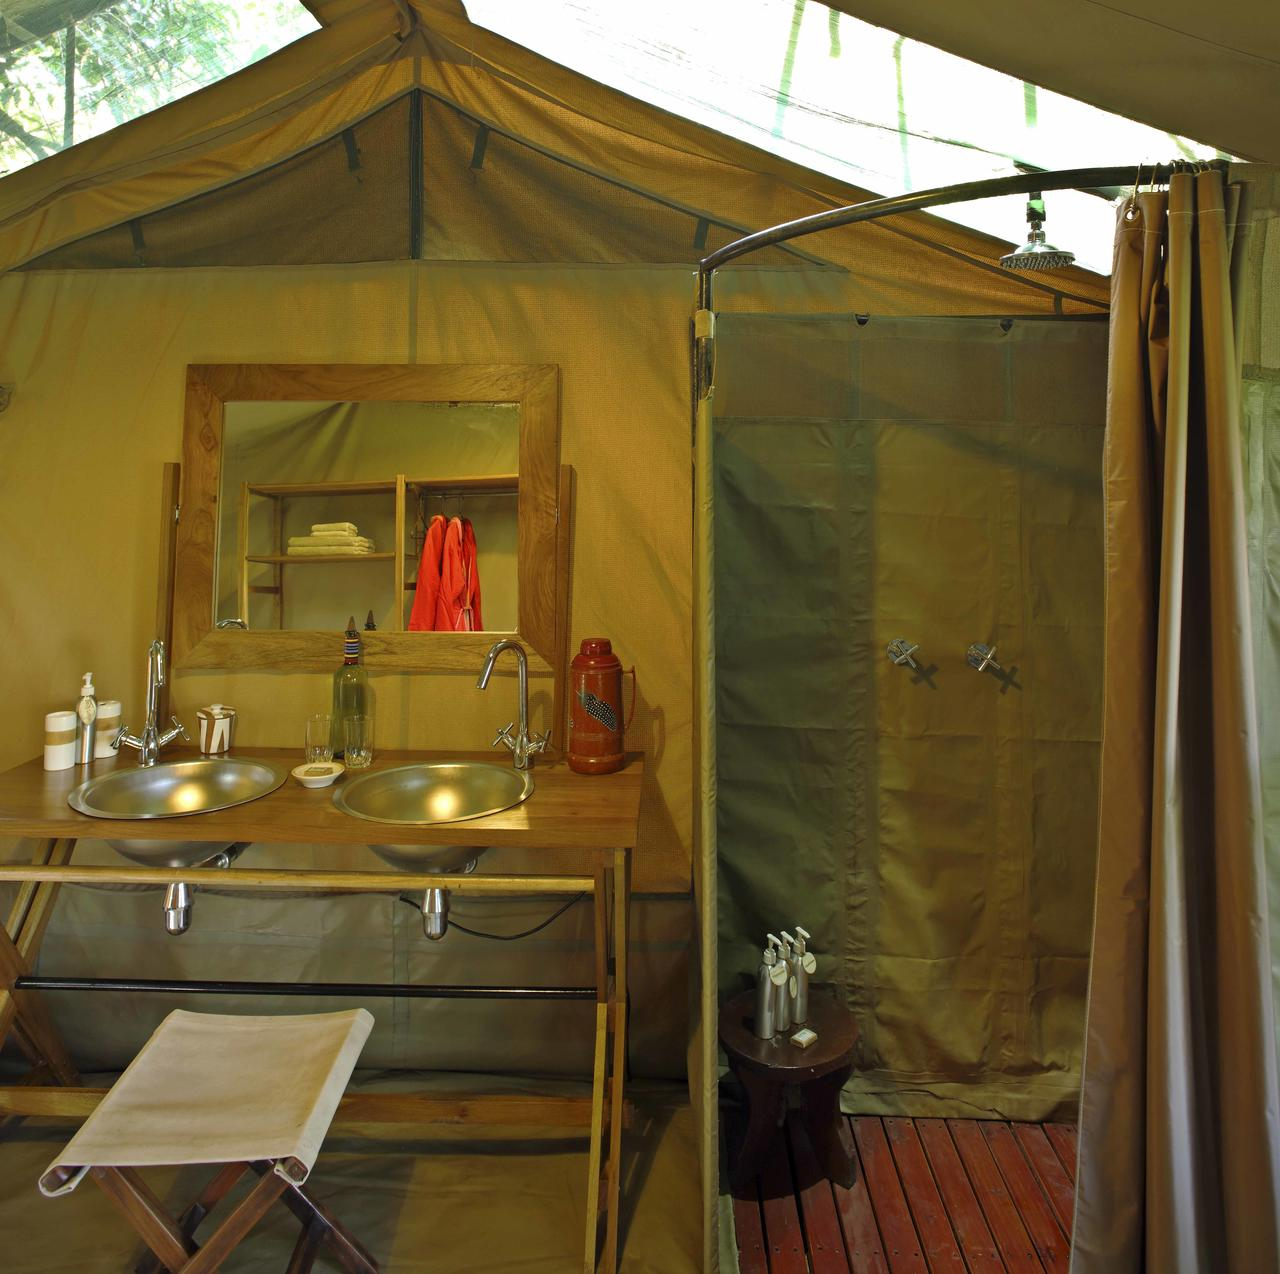 ... Rekero C& - Guest tent bathroom ... & Rekero Camp - Fotos